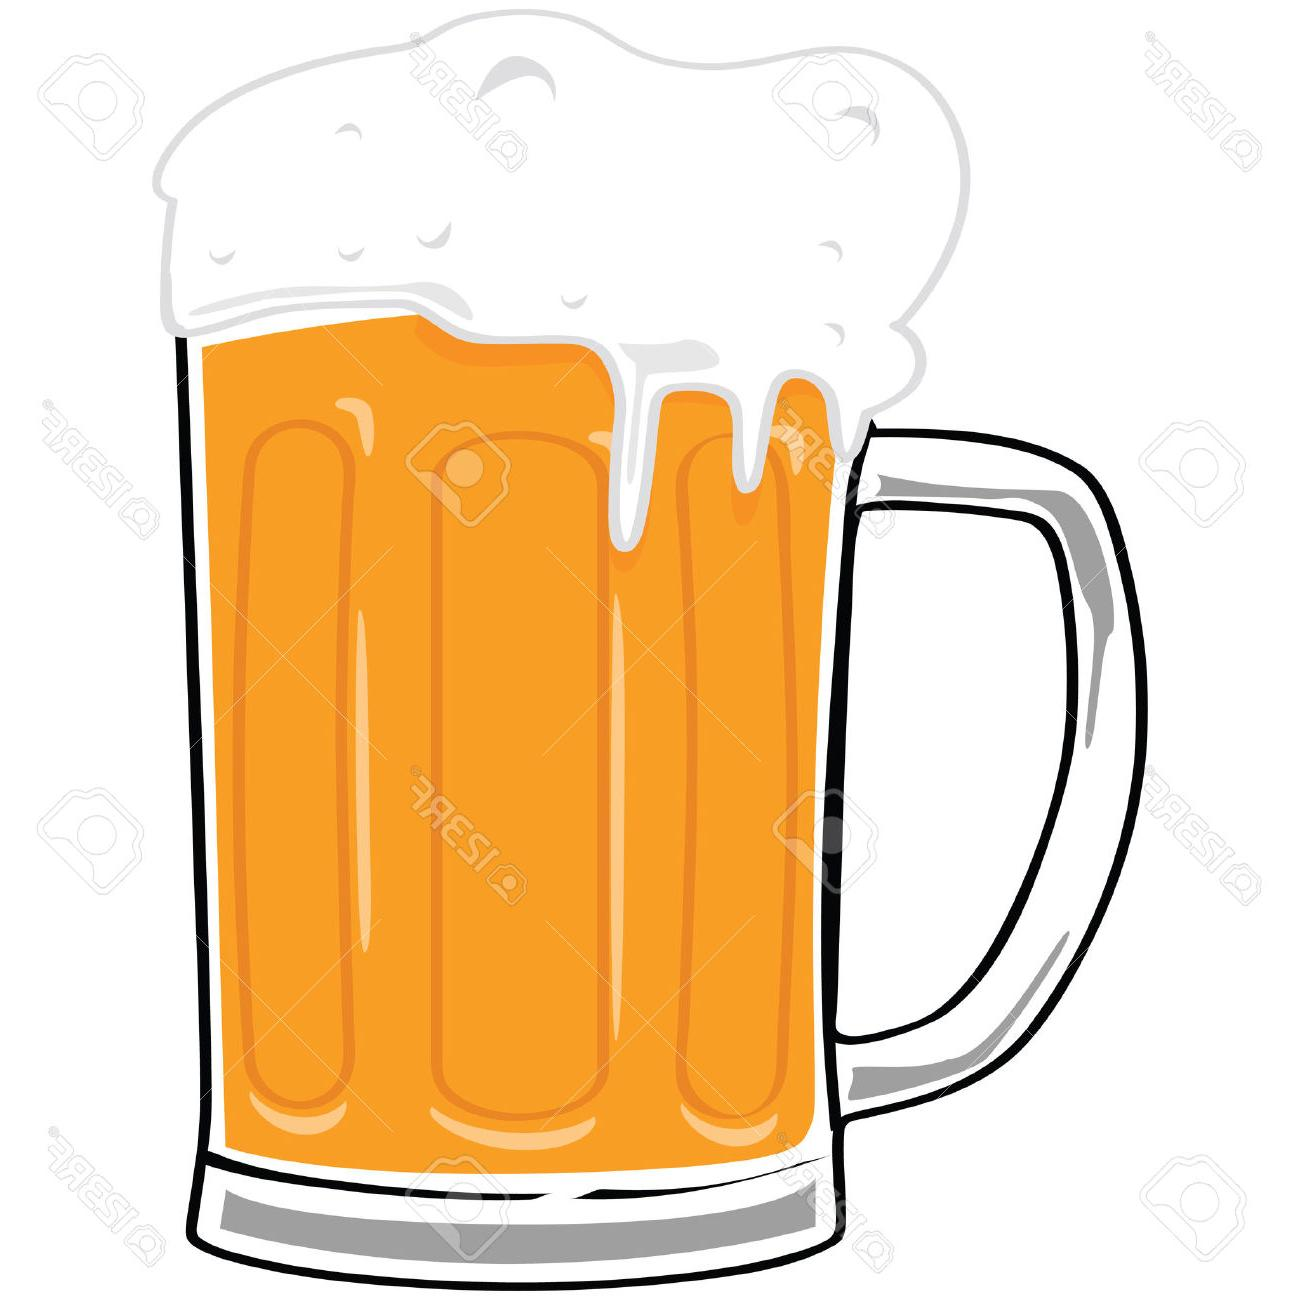 Beer mugs comic clipart free image free stock Cartoon Beer Mug Clipart | Free download best Cartoon Beer Mug ... image free stock